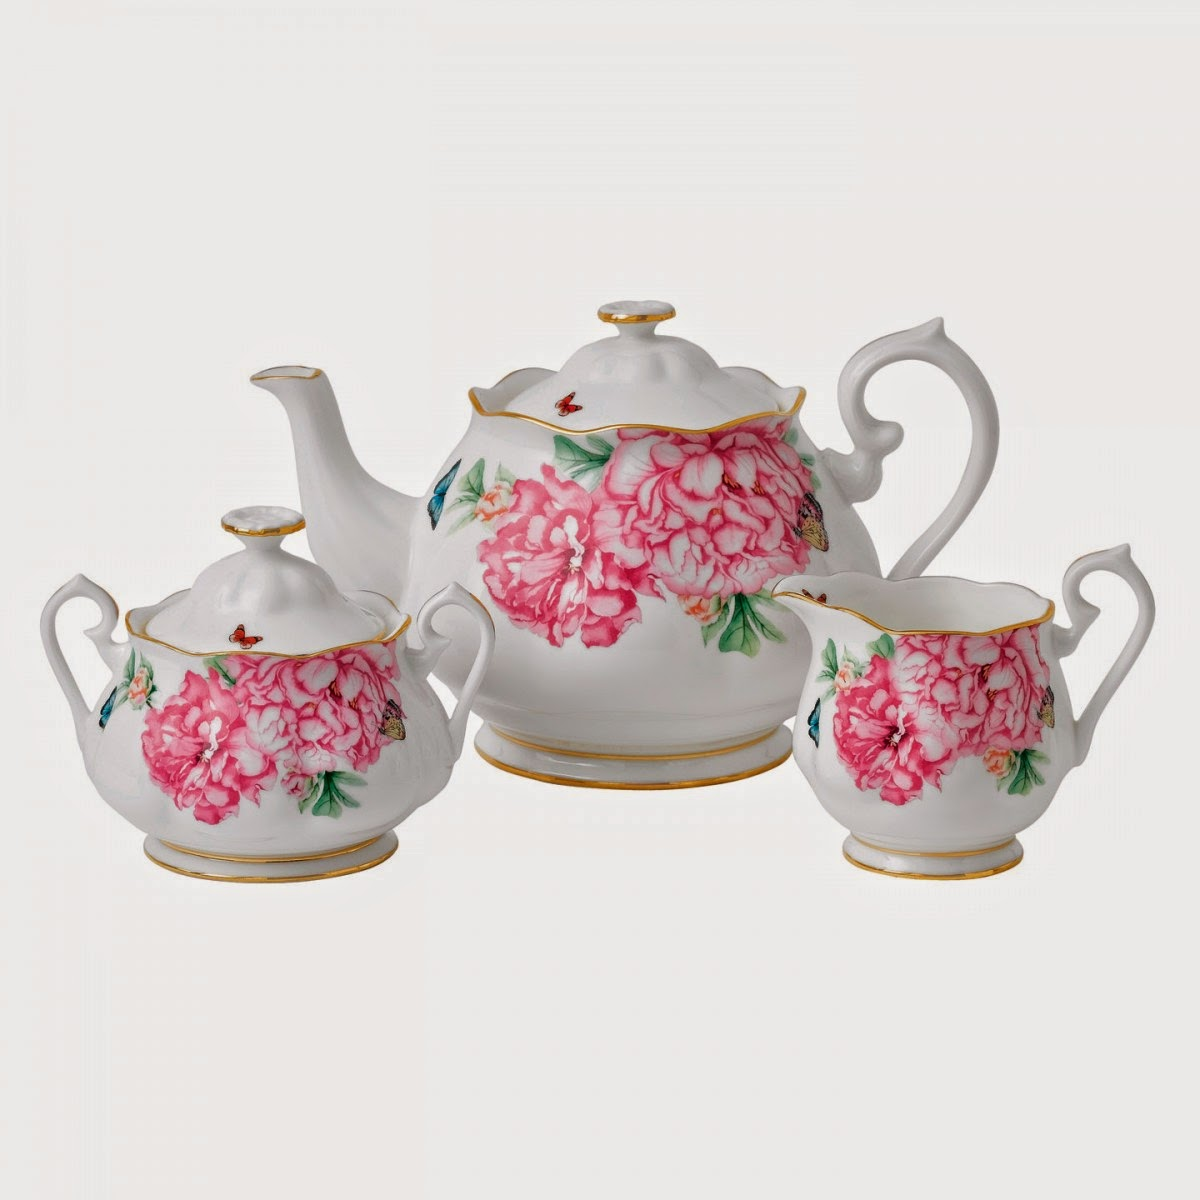 http://www.royalalbert.com/friendship-3-piece-tea-set